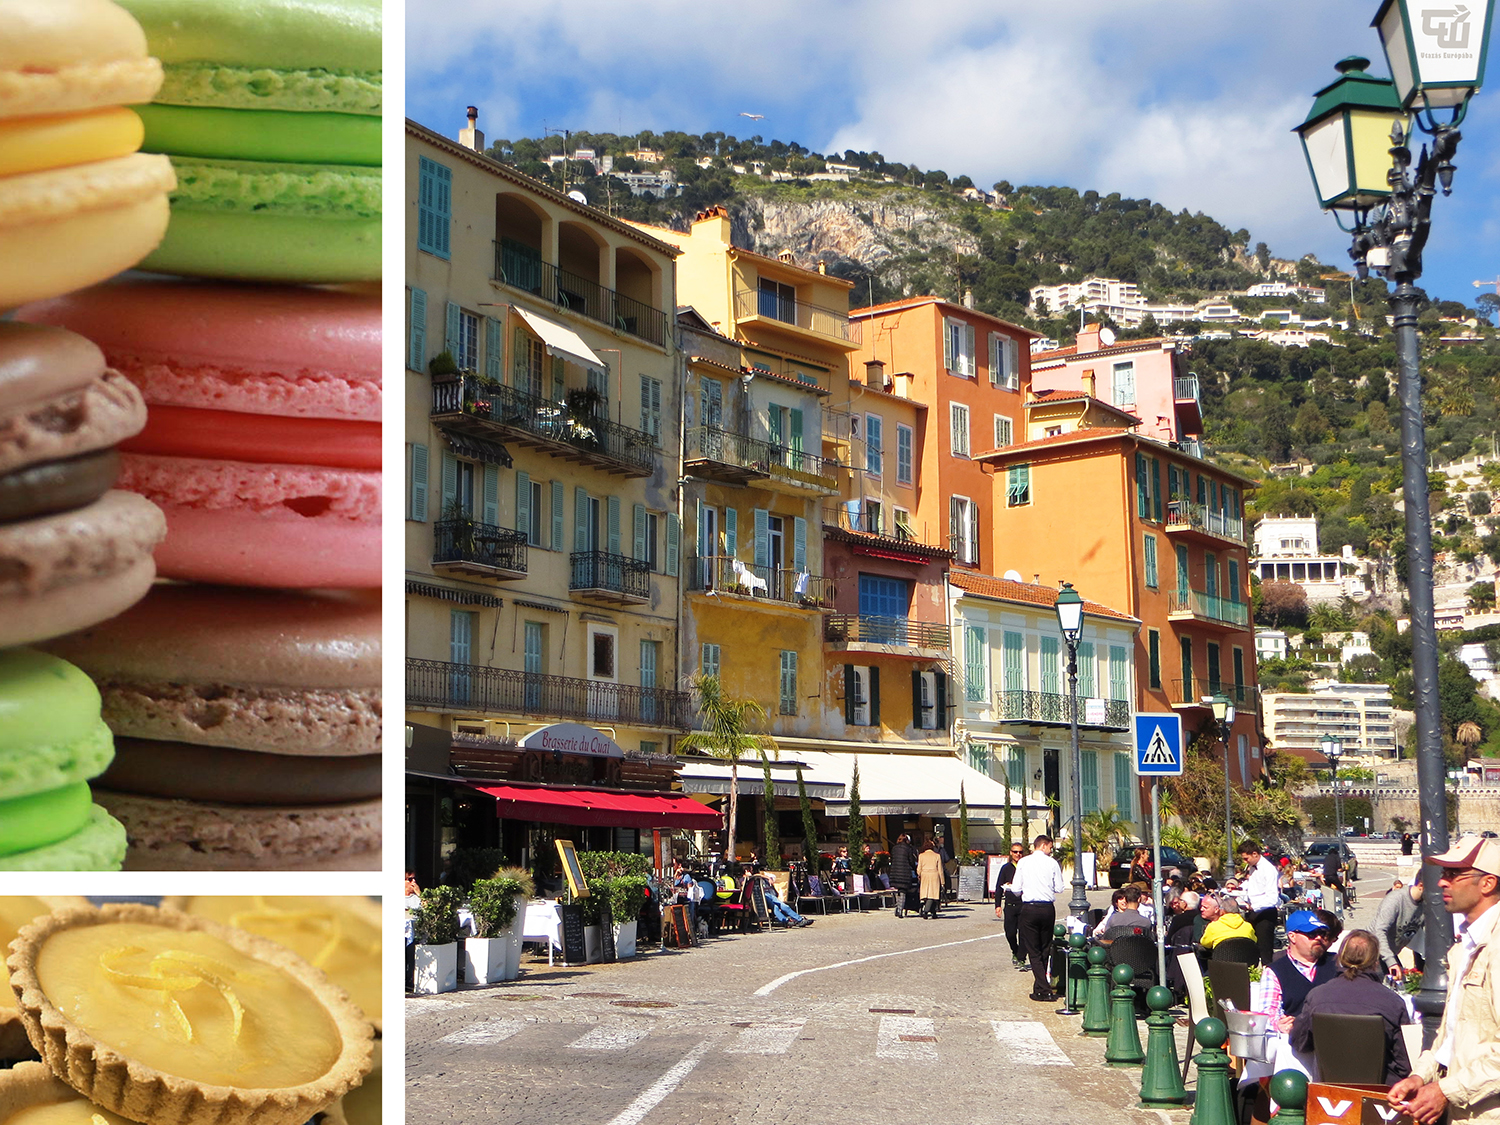 06_franciaorszag_france_villefranches-sur-mer_riviera_macaron.jpg